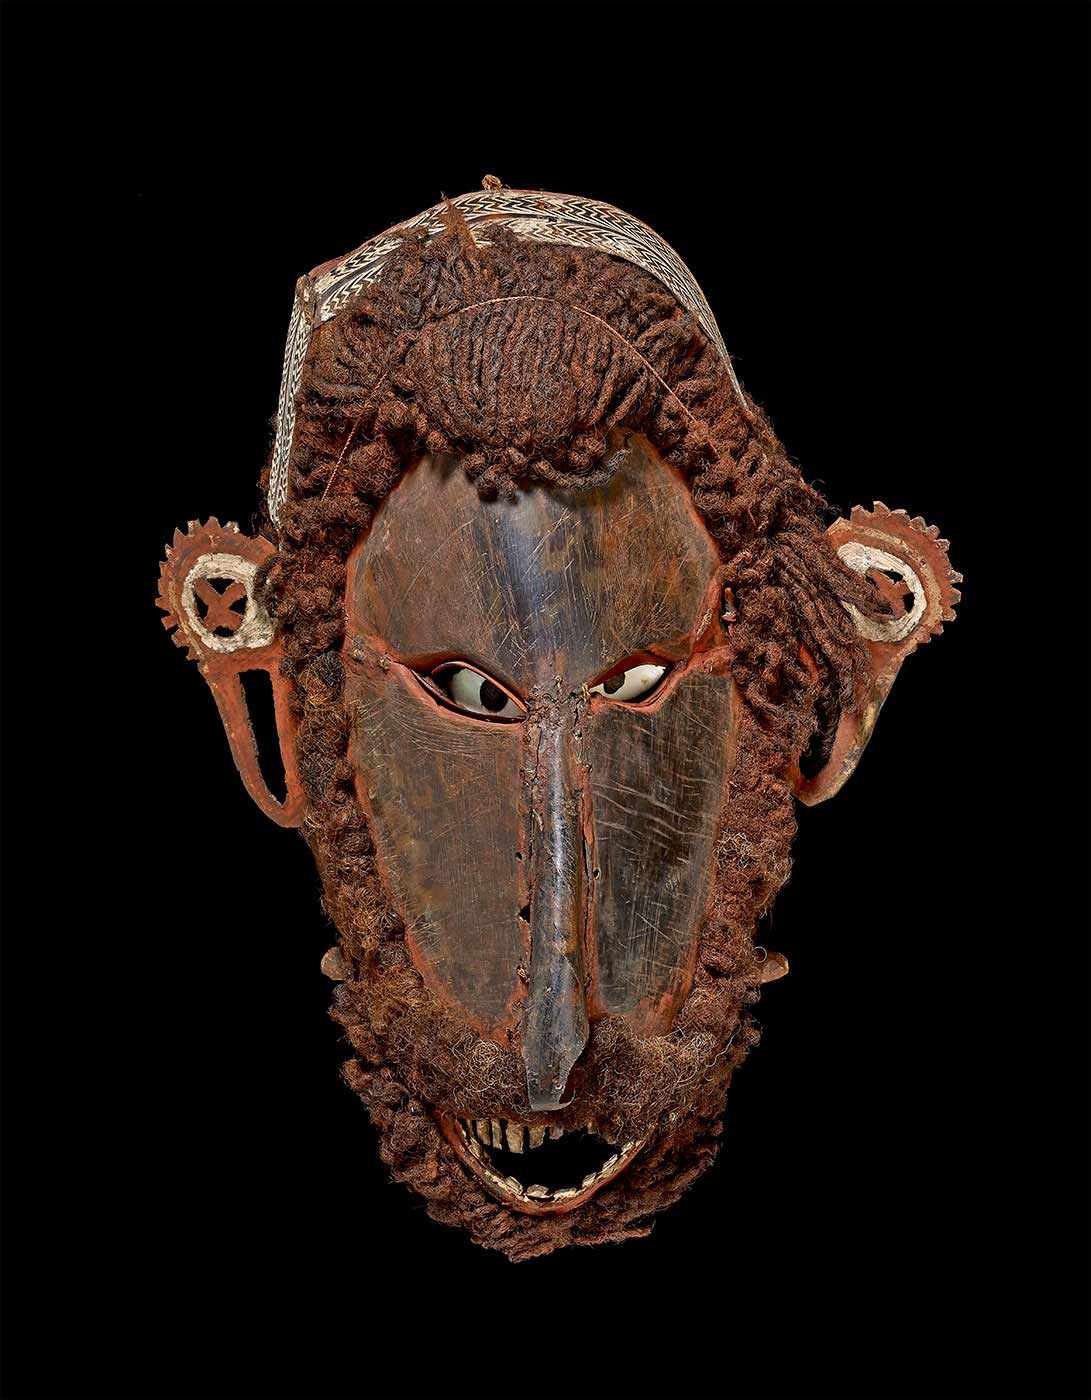 Mask, made from turtle-shell plates which have been moulded and sewn into the form of an elaborate human face; hair and beard made from human hair; shell eyes. - click to view larger image